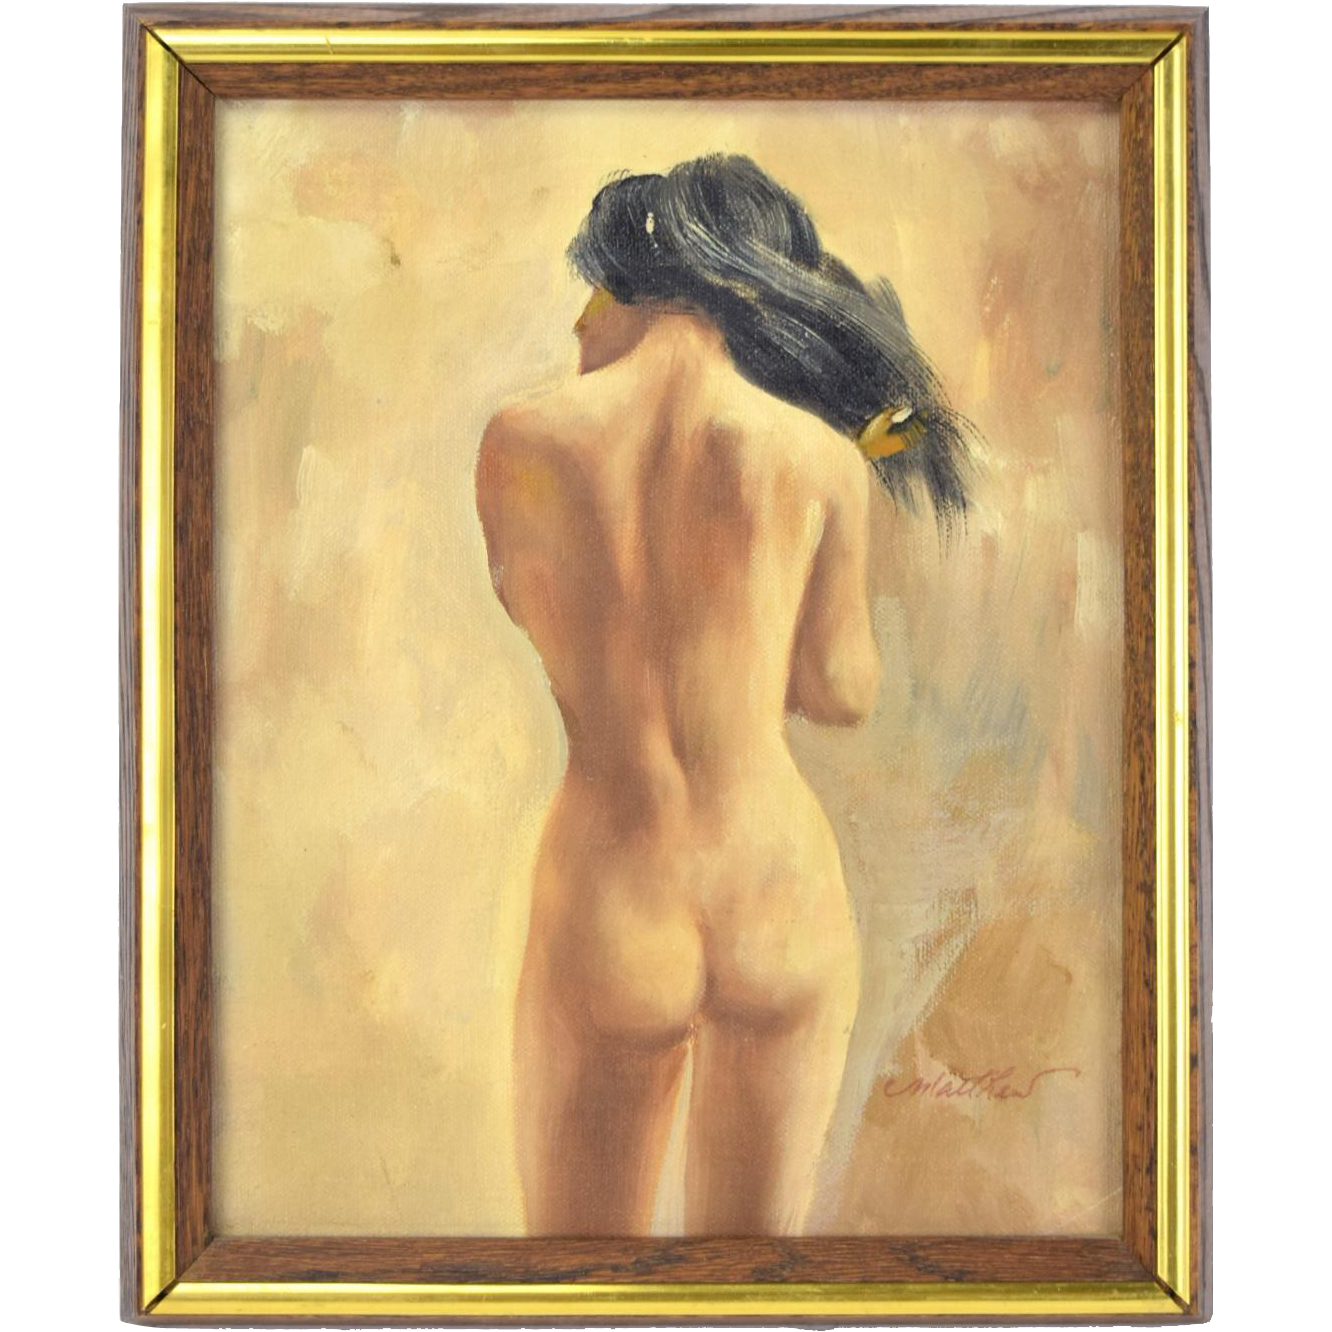 Vintage 1960's Nude Oil Painting Portrait Woman's Posterior signed Matthew